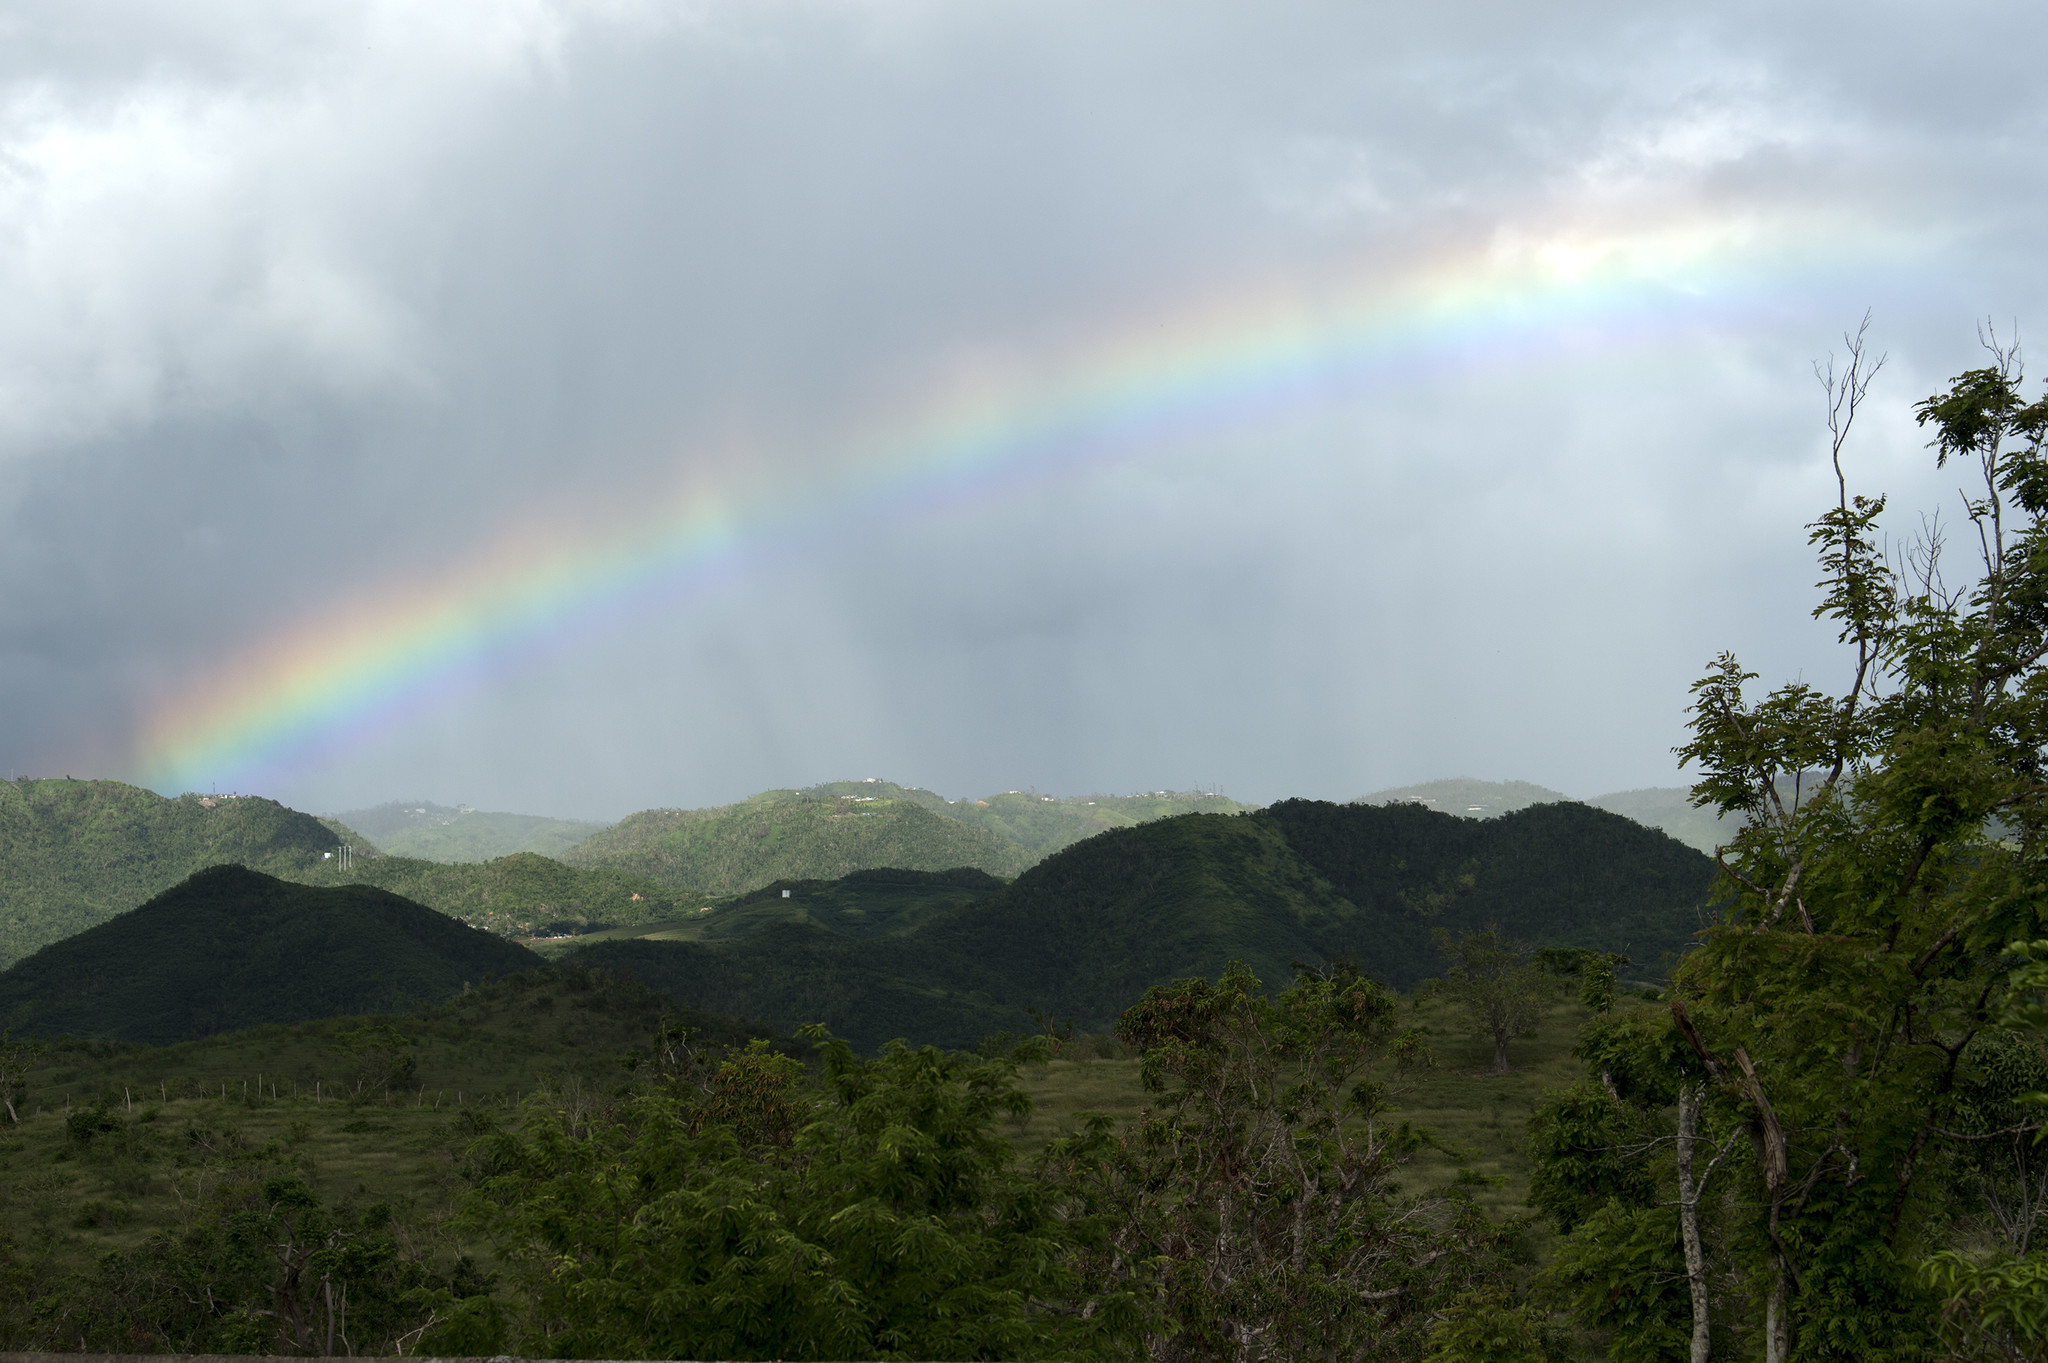 A rainbow emerges over the mountains of Coamo, Puerto Rico on the final day of the team